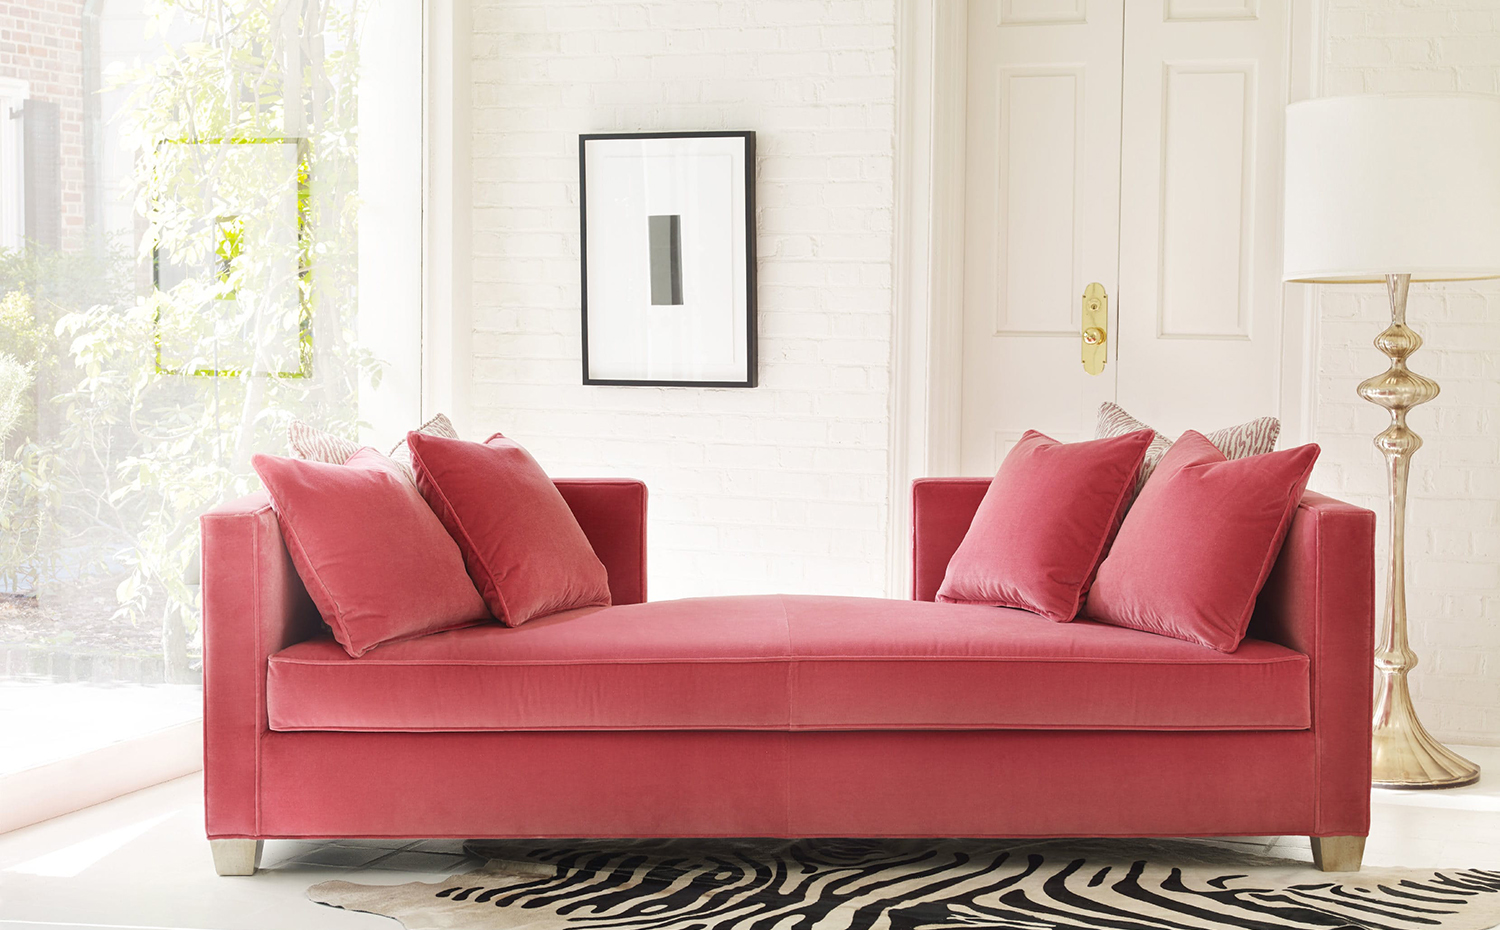 Cynthia Rowley for Hooker Furniture Coco Daybed. Coco Daybed, de Cynthia Rowley para Hooker Furniture